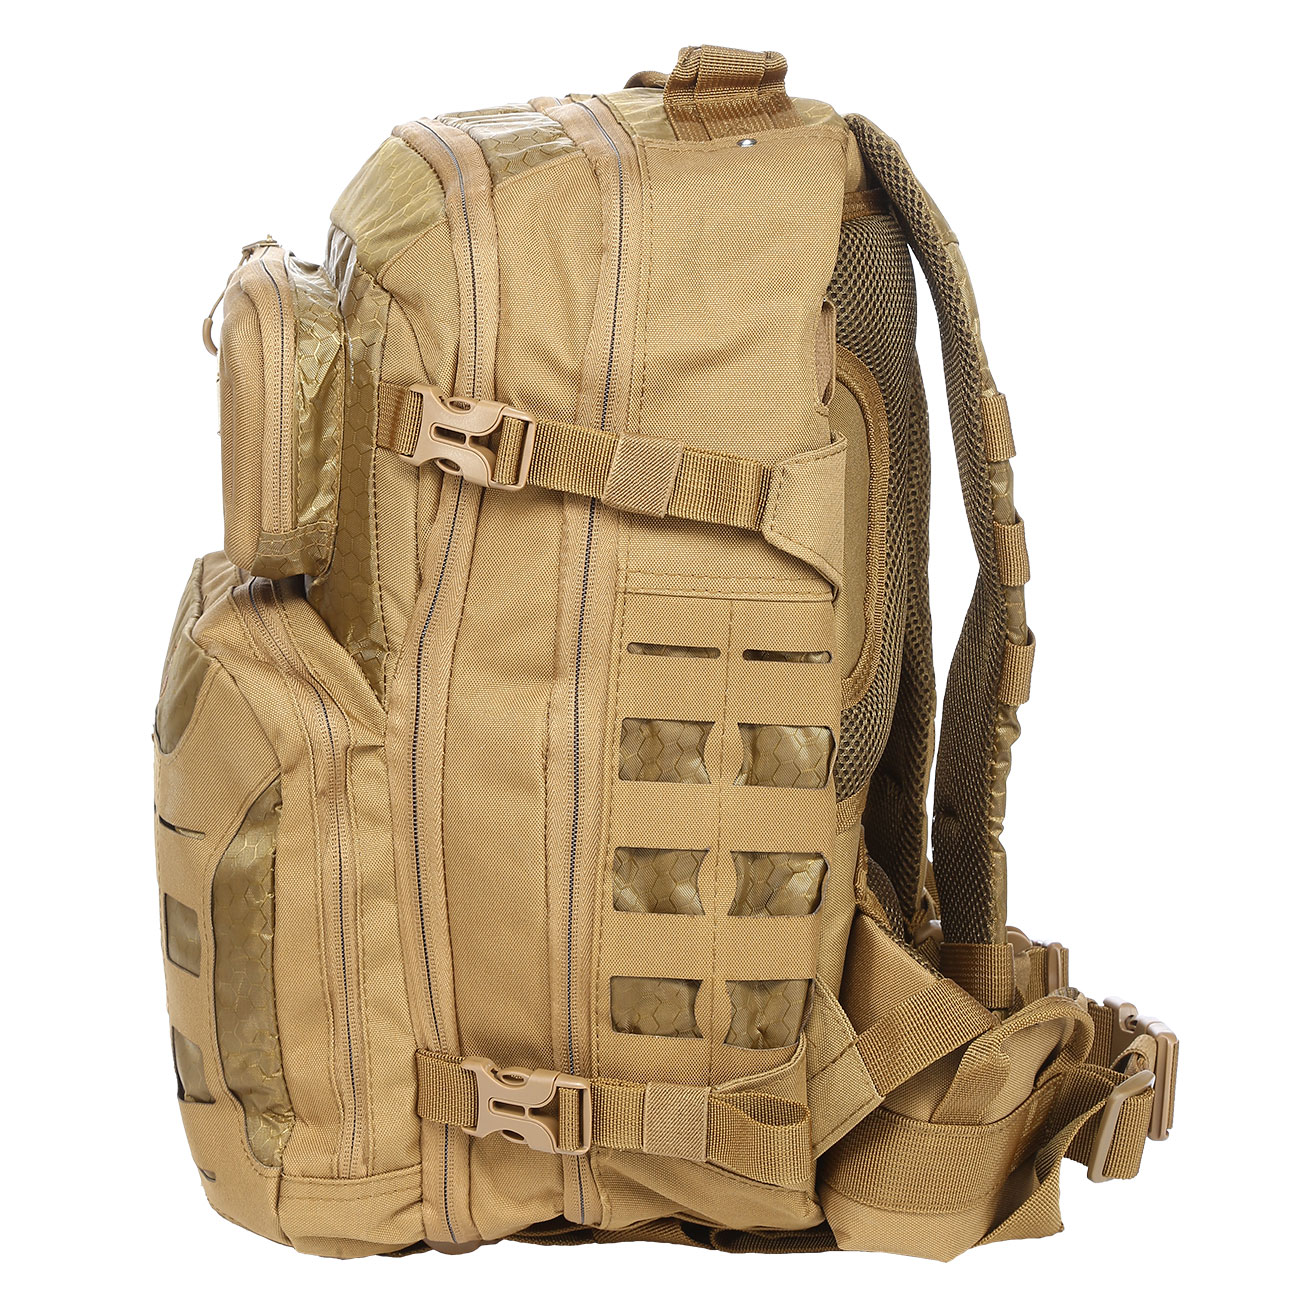 MFH Rucksack Operation I 30 Liter coyote 4